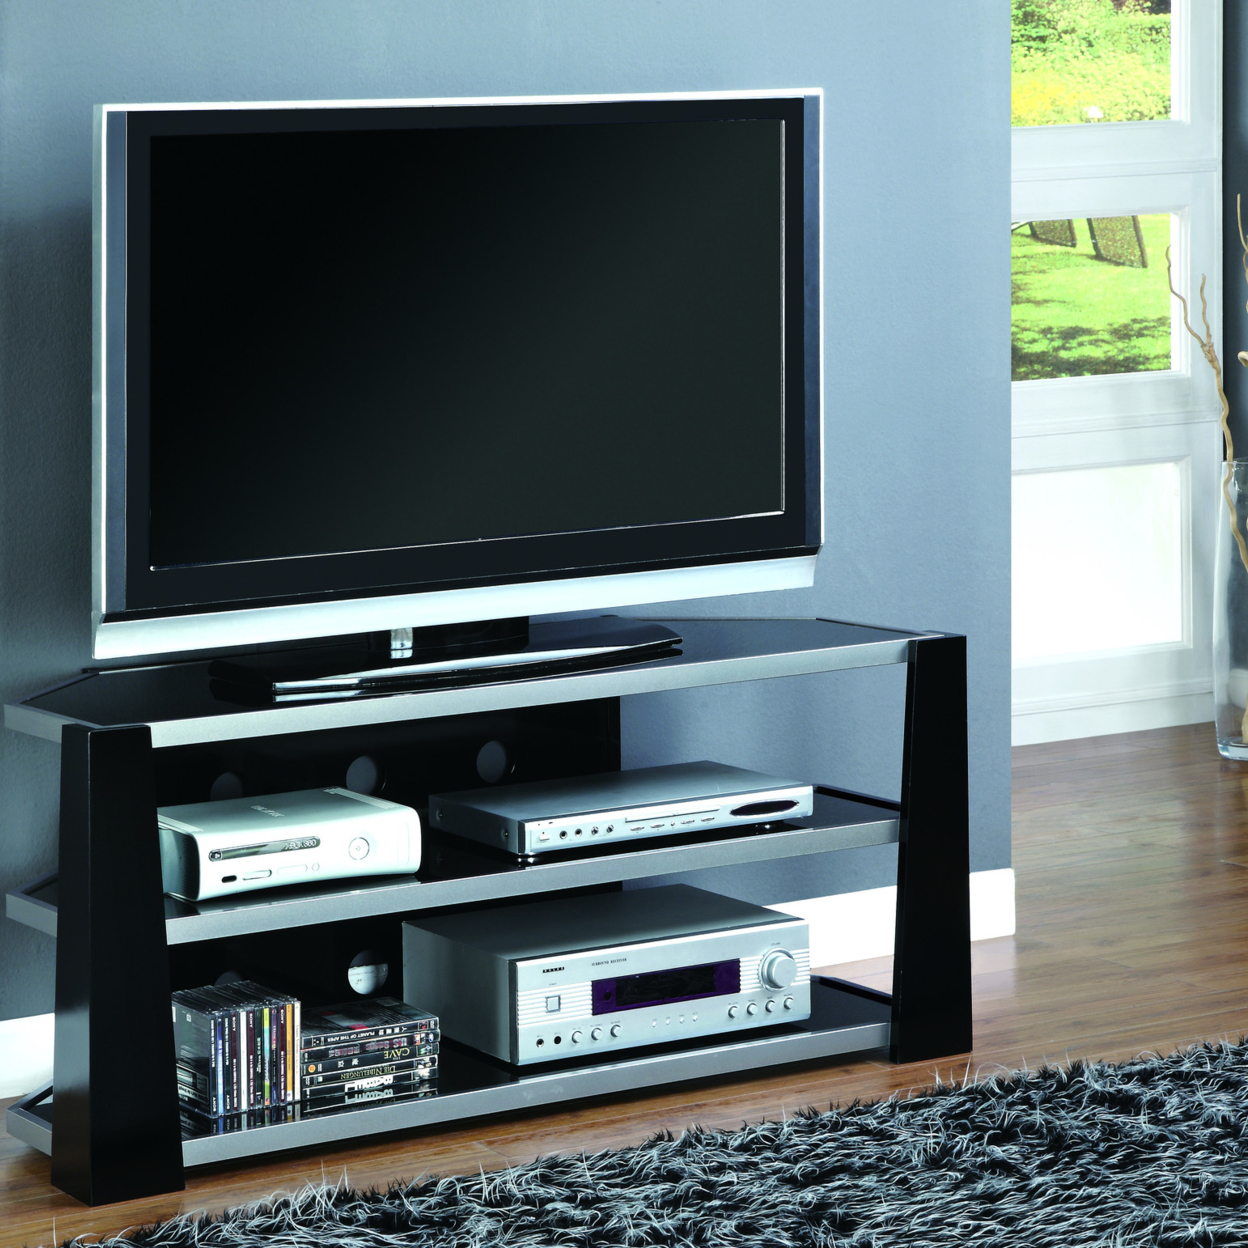 """Glossy Black/Silver Metal 48\""""l TV Console with Tempered Glass 559c26447aaaaaed188b502b"""